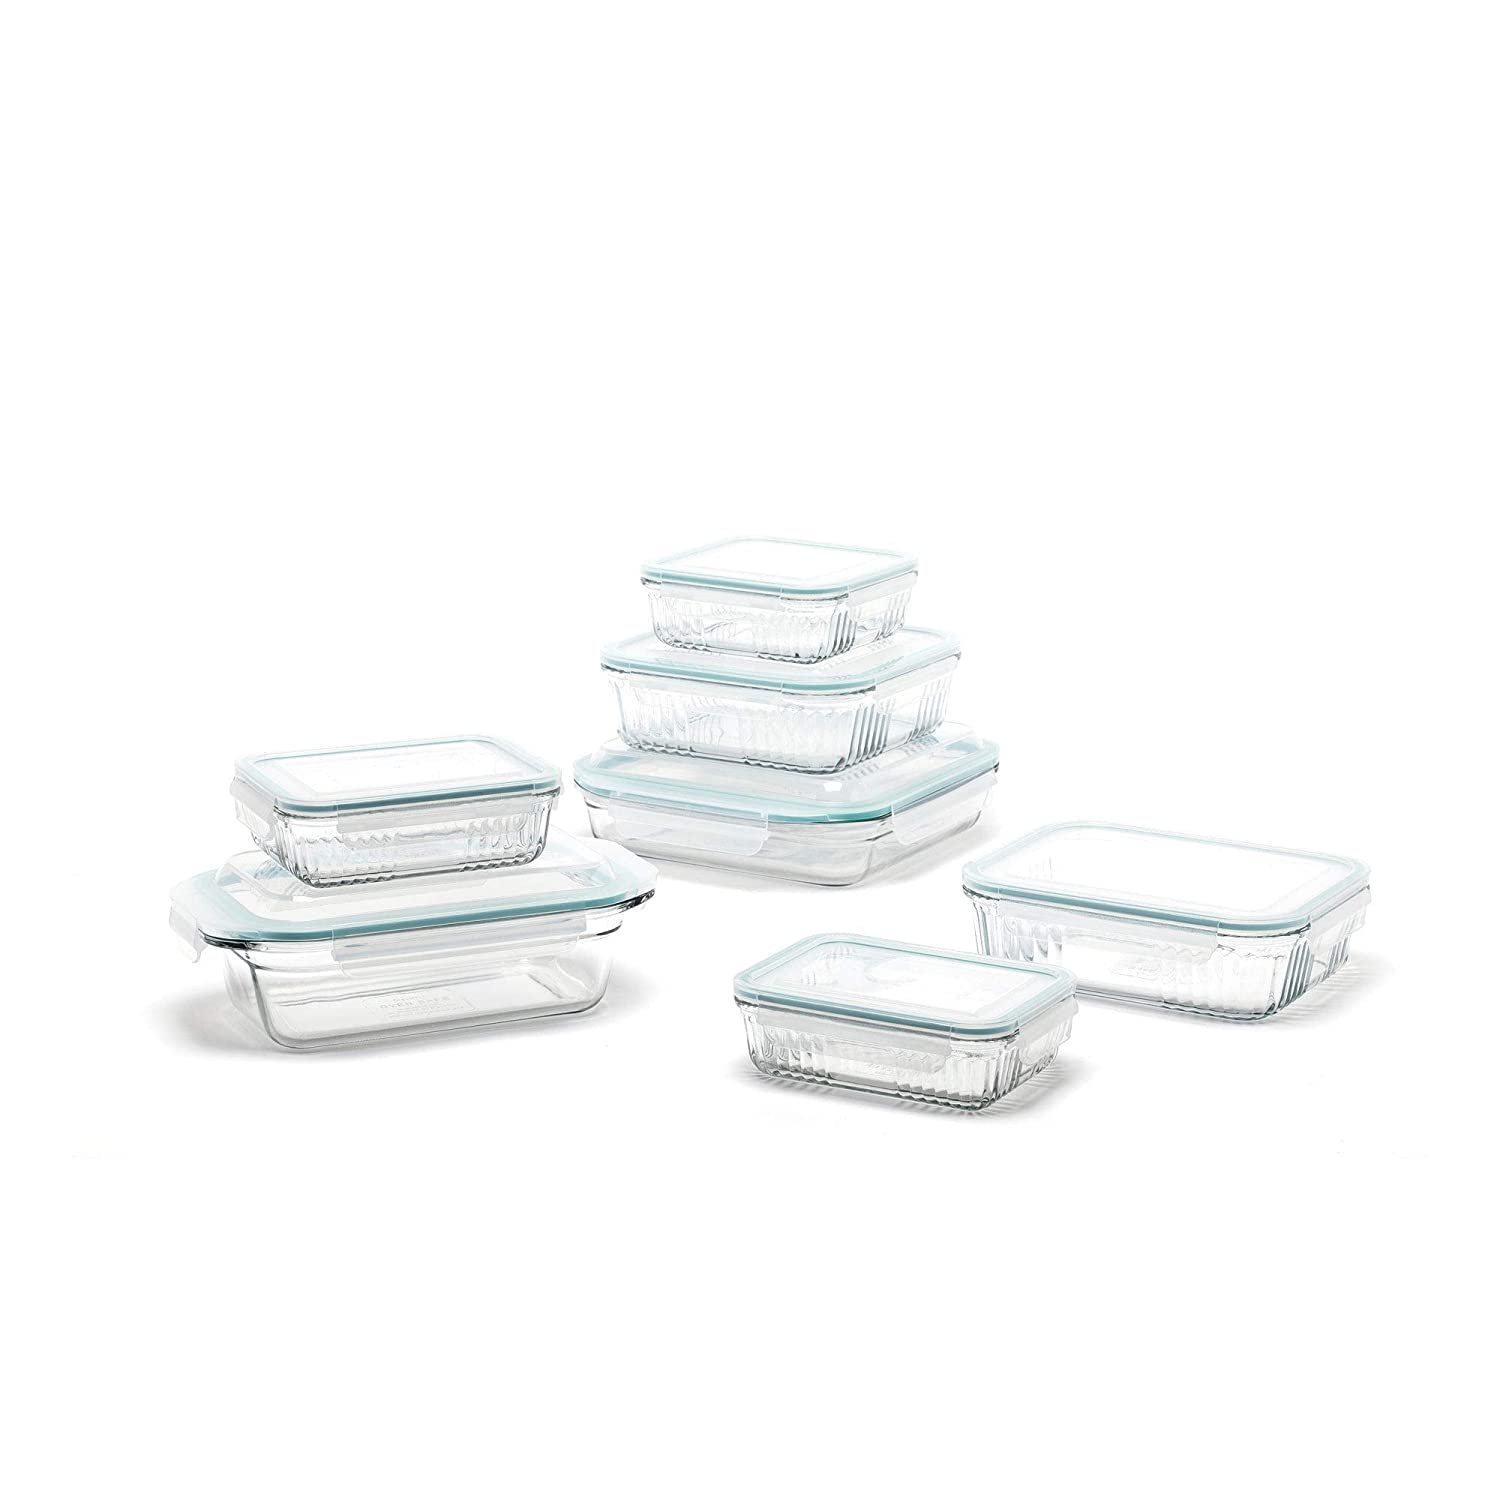 Glasslock Microwave Safe Glass Food Storage Bakeware Containers 14 Piece Set